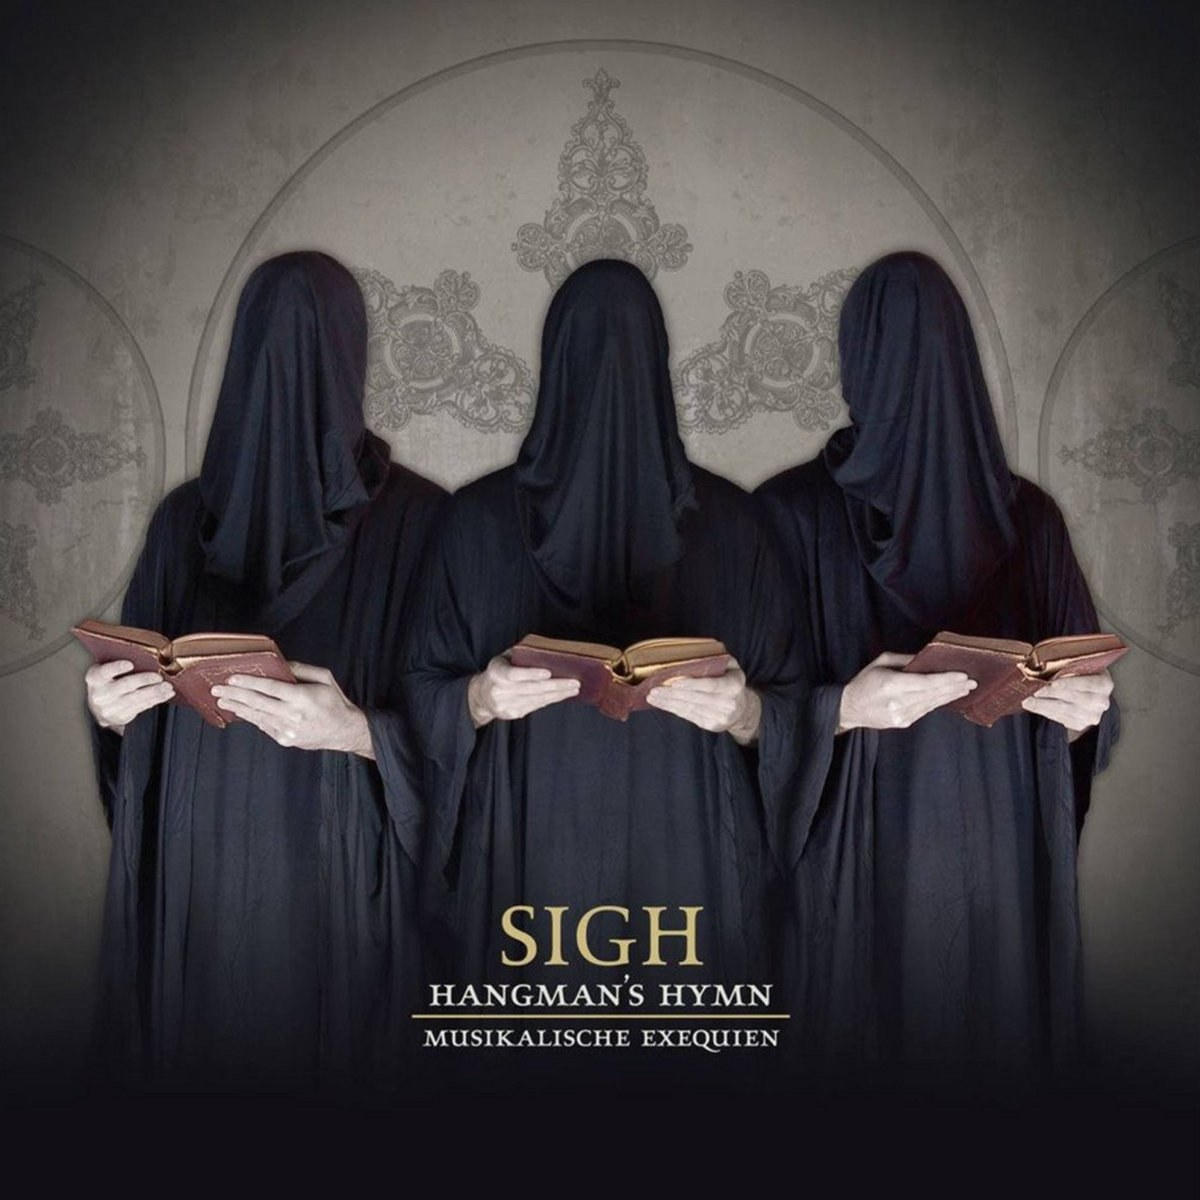 Review for Sigh - Hangman's Hymn - Musikalische Exequien